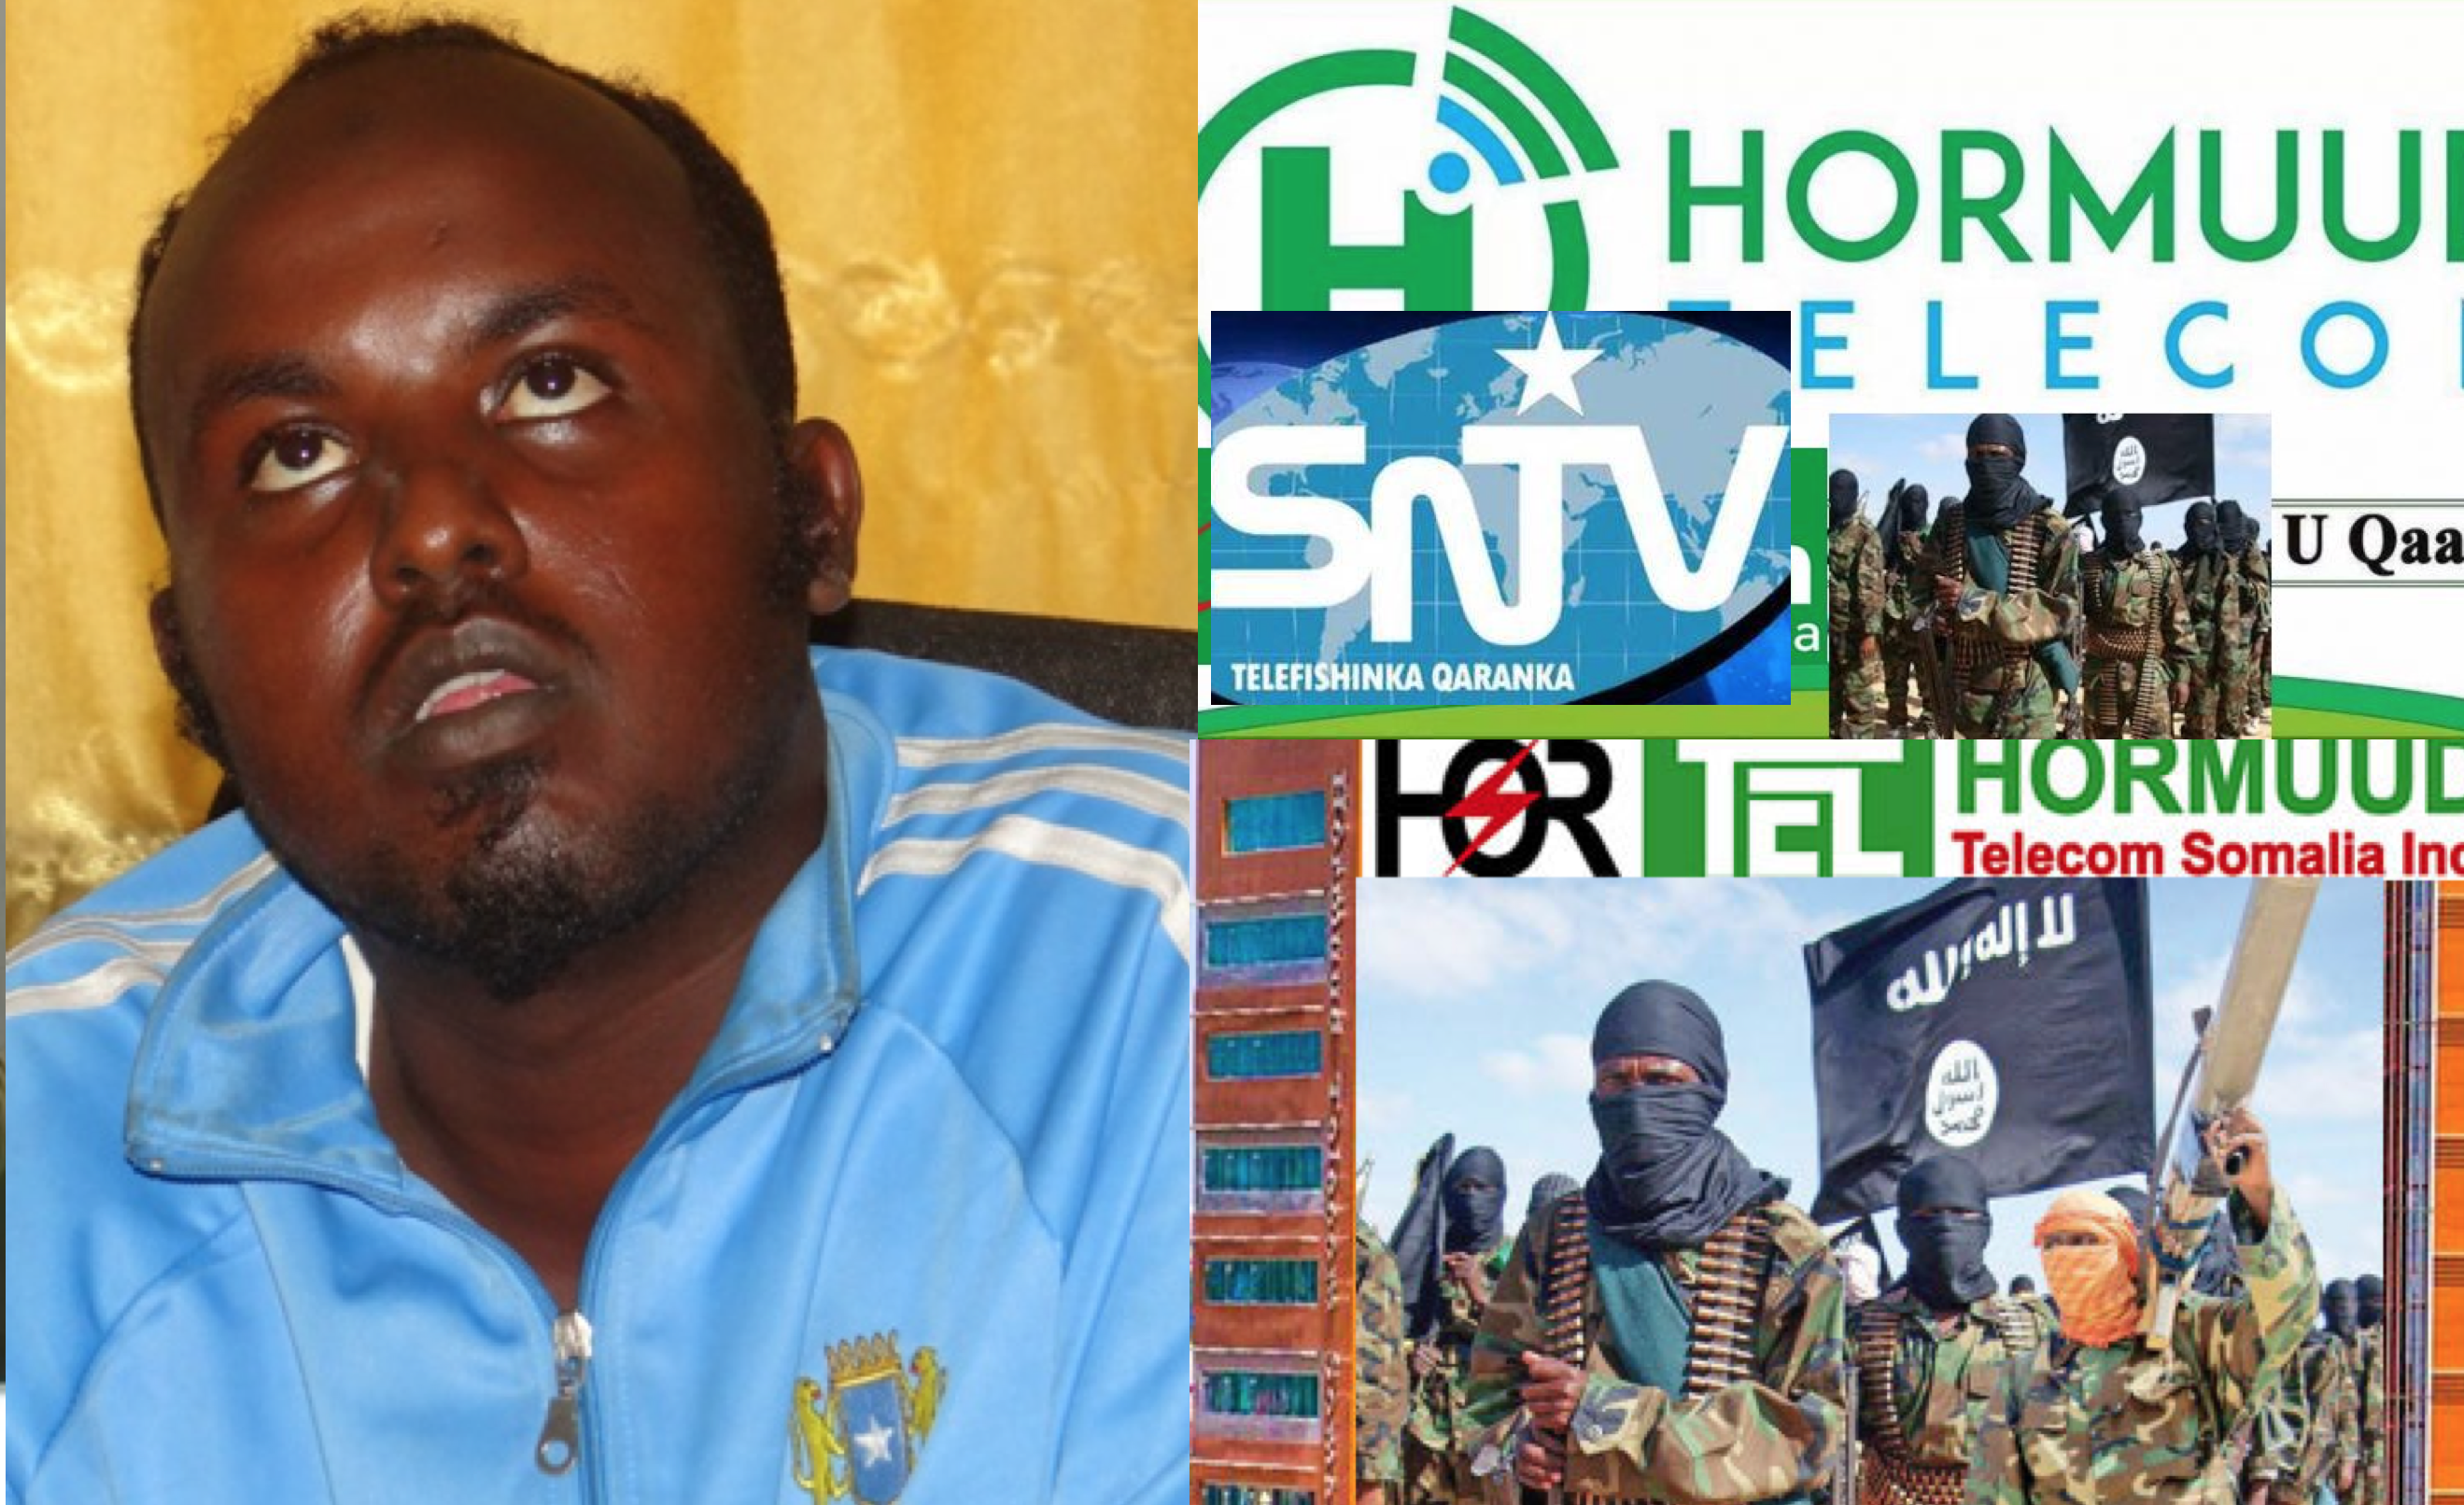 Somalia:Hormuud Telecom bribed SNTV directors with a large sum of money to ensure the sensitive account to be deleted